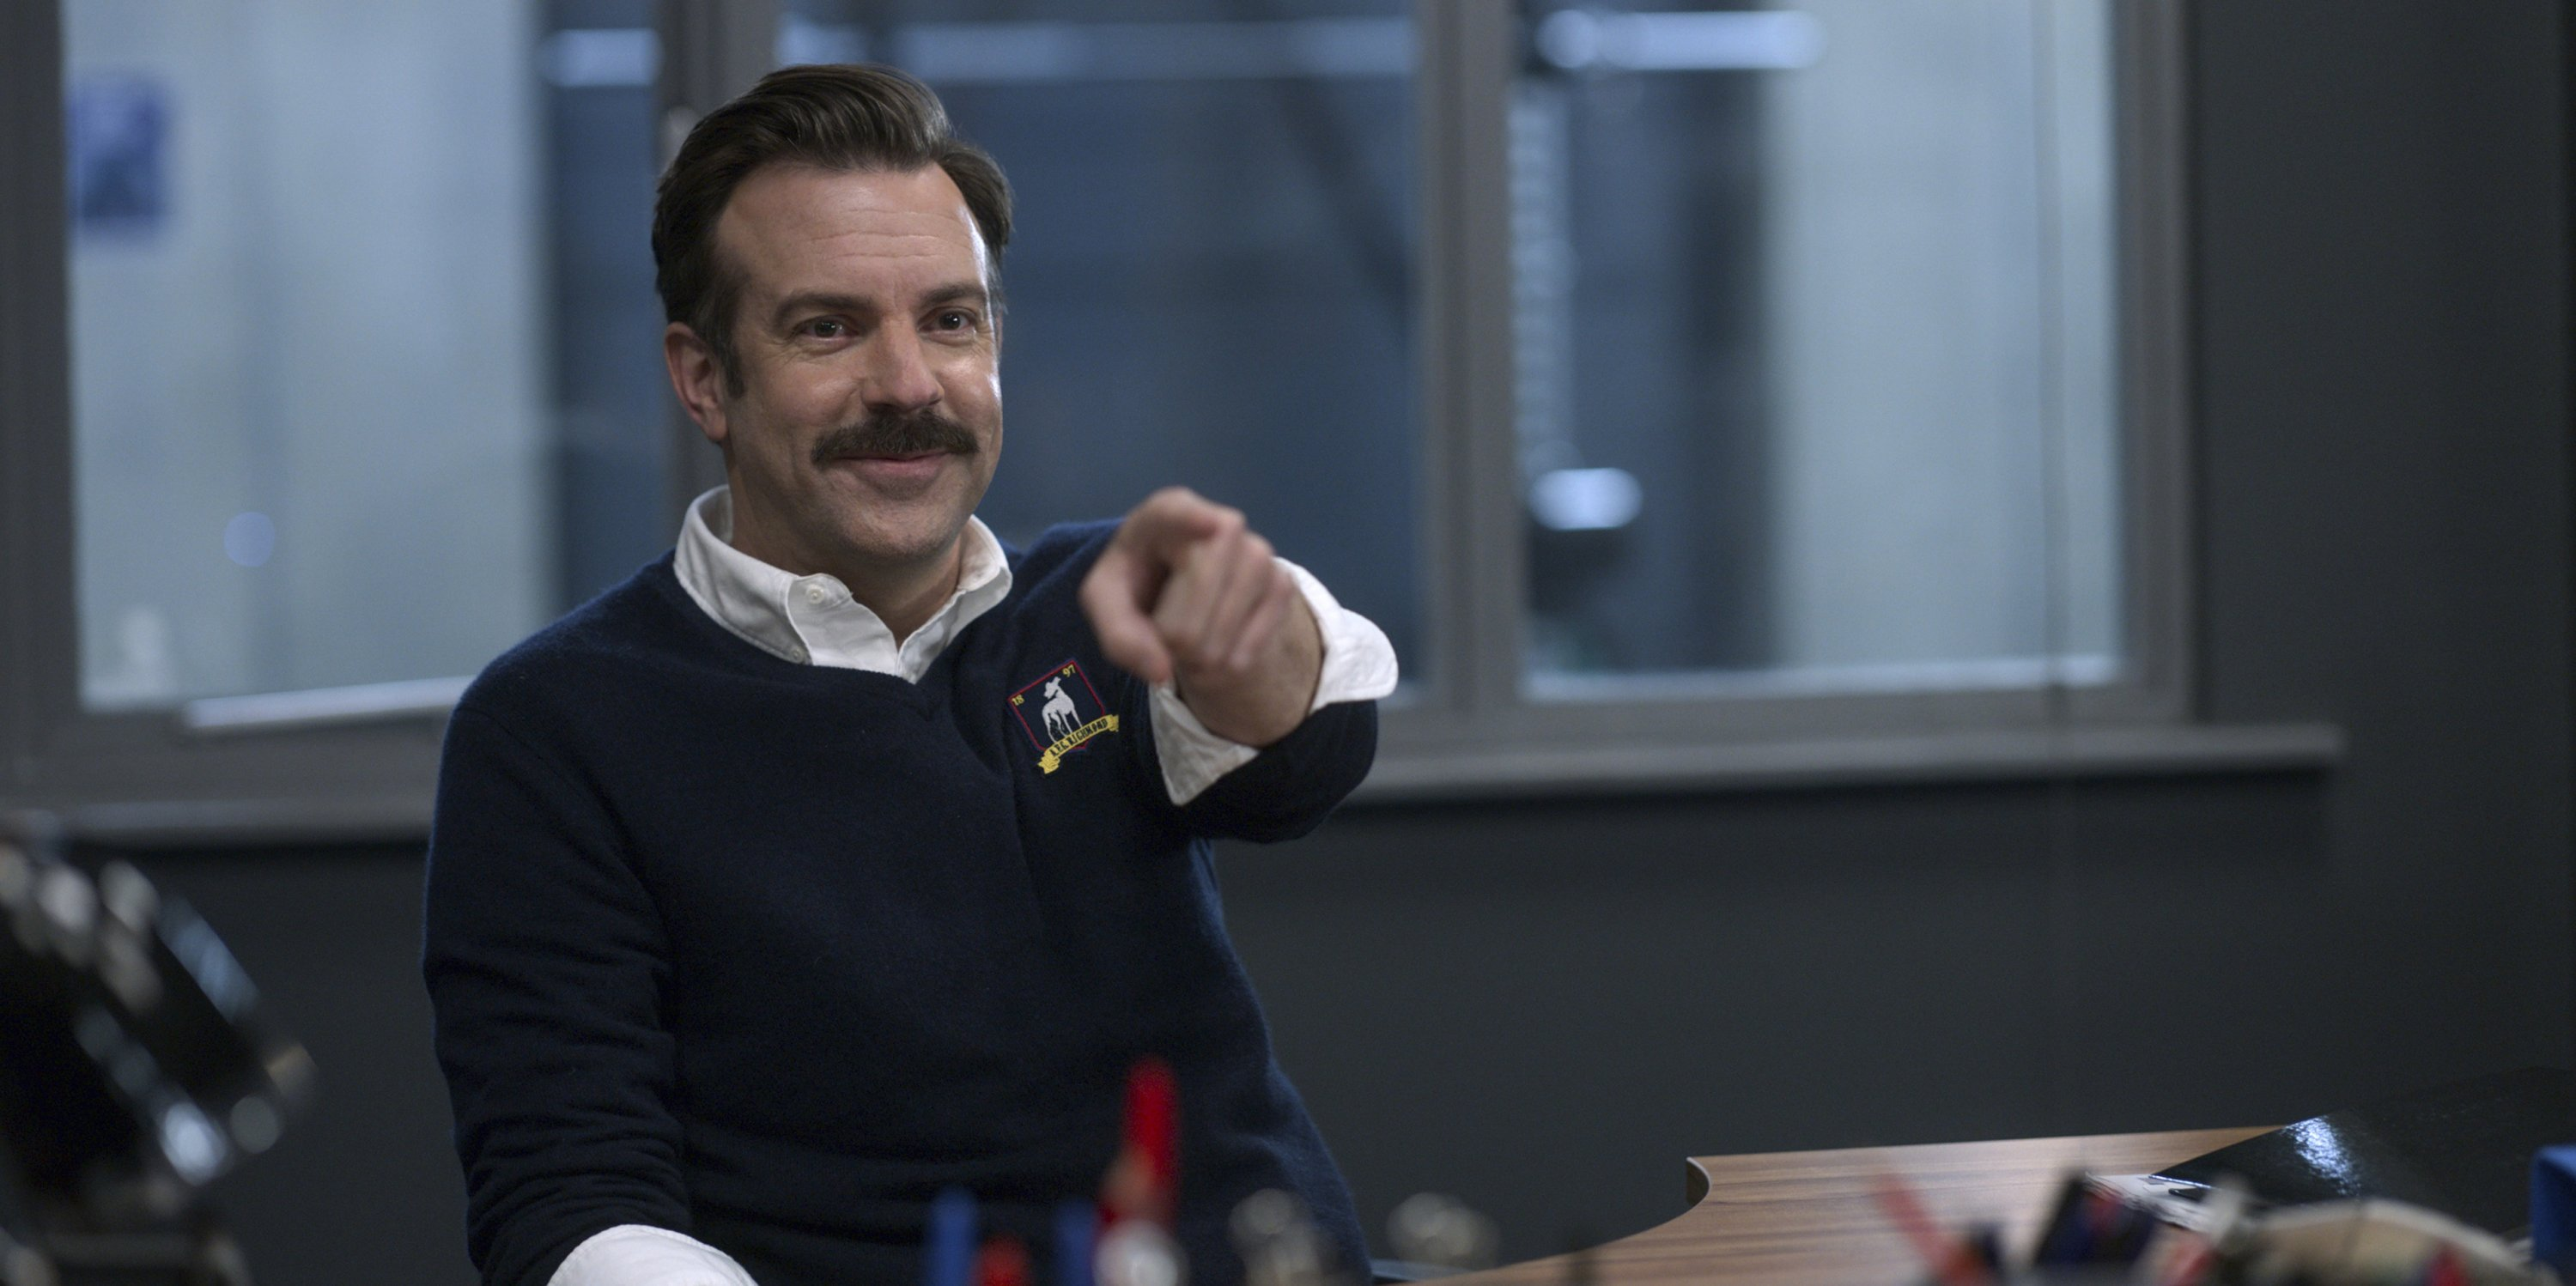 Jason Sudeikis, as Ted Lasso, points his finger, in a scene from the series 'Ted Lasso.' (Apple TV+ via AP)